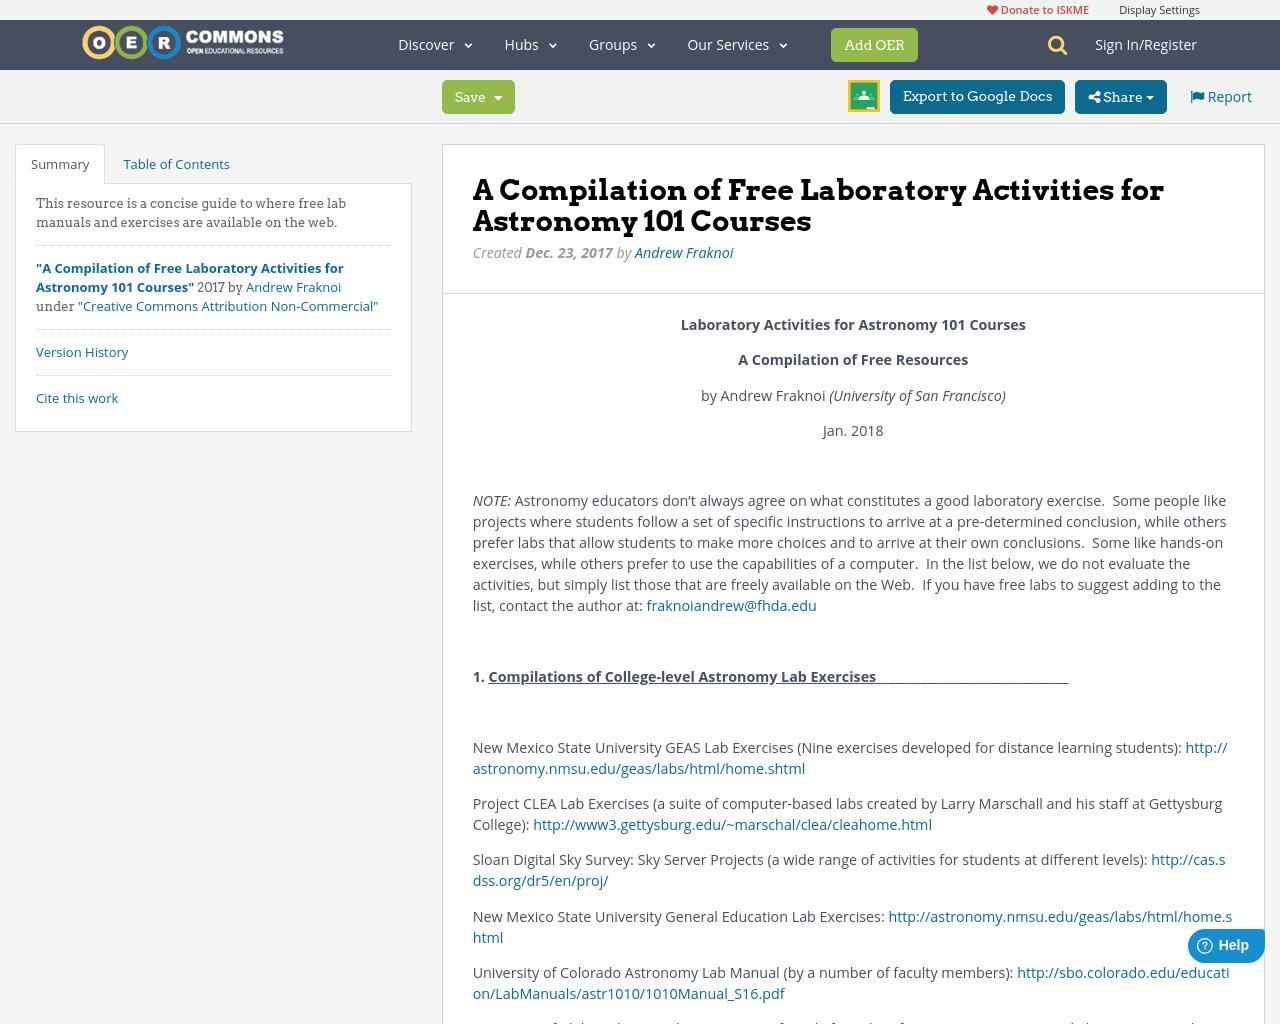 A Compilation of Free Laboratory Activities for Astronomy 101 Courses | OER  Commons